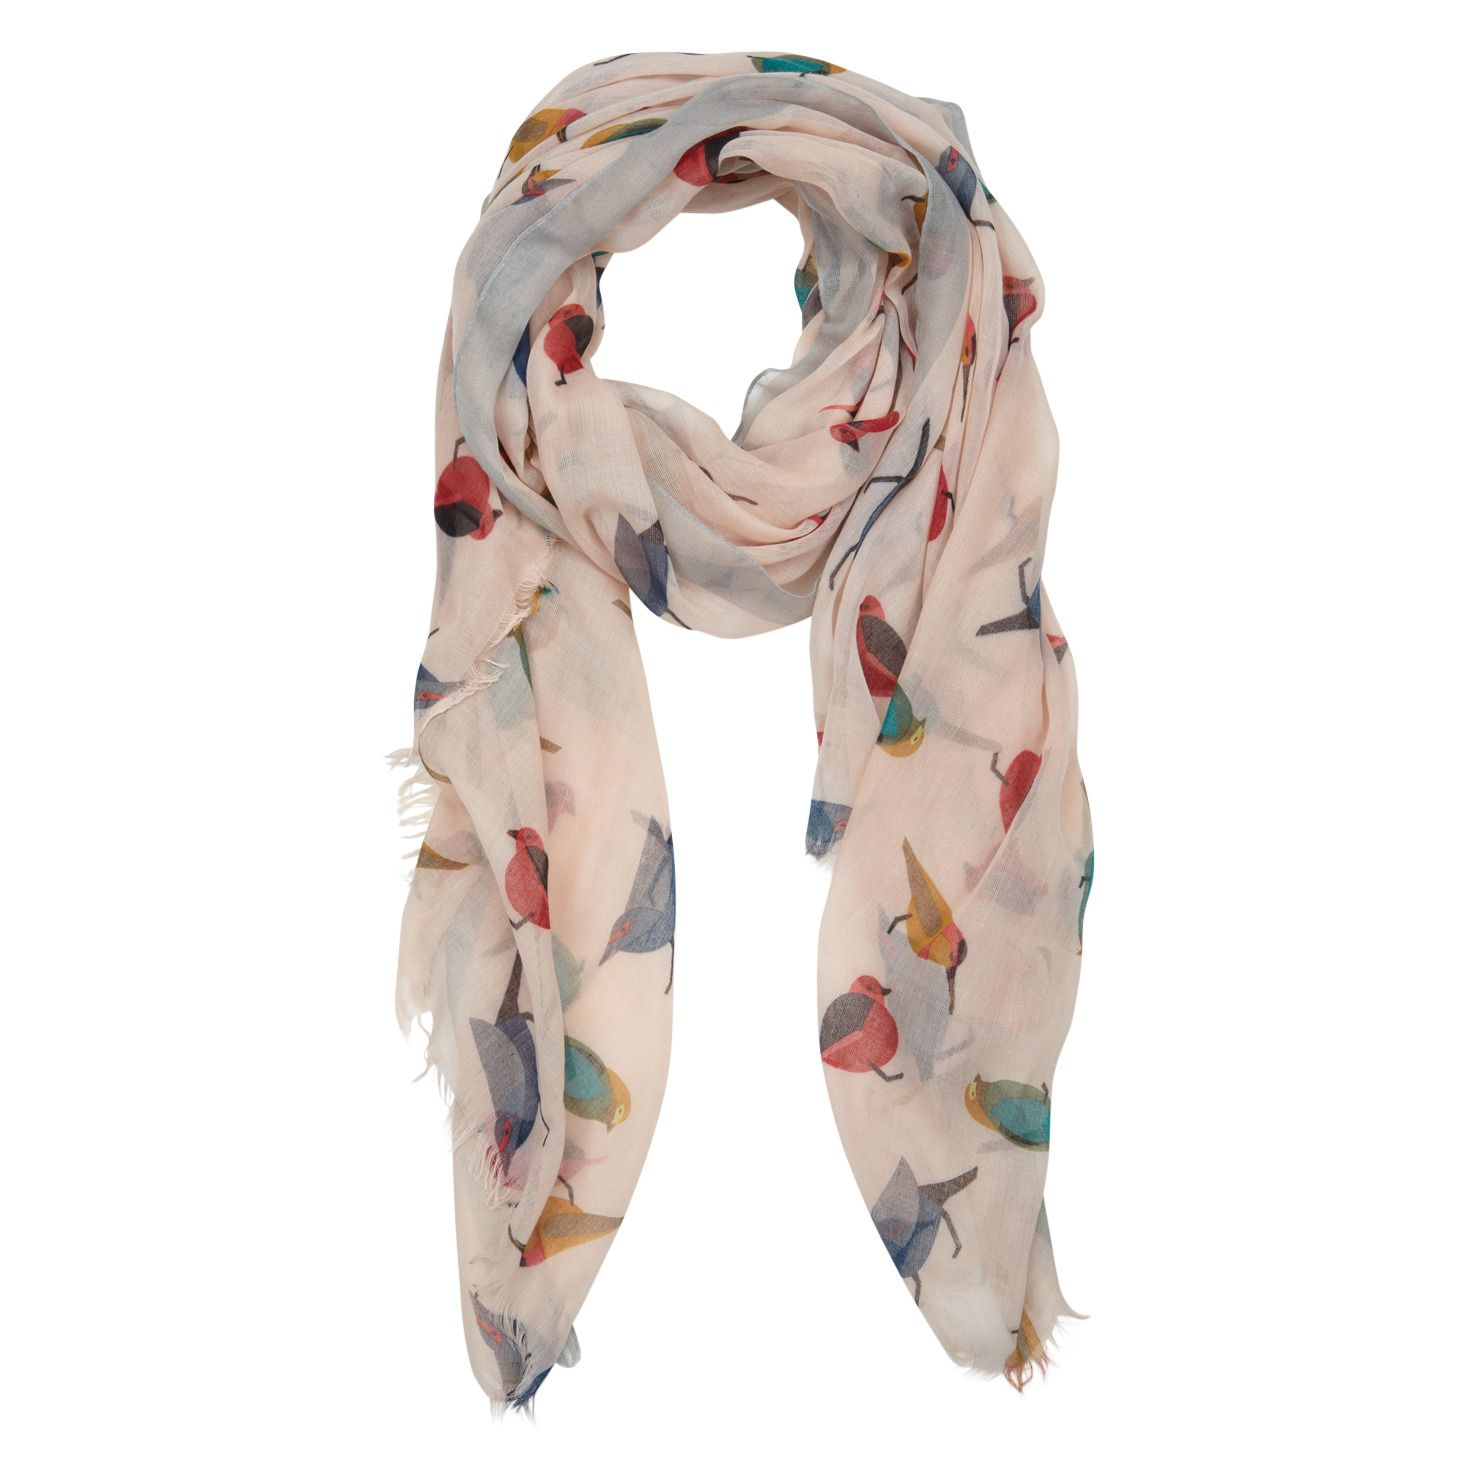 BIRD SCARF!  MAUDE - accessories's hats, scarves & gloves women's for sale at ALDO Shoes.